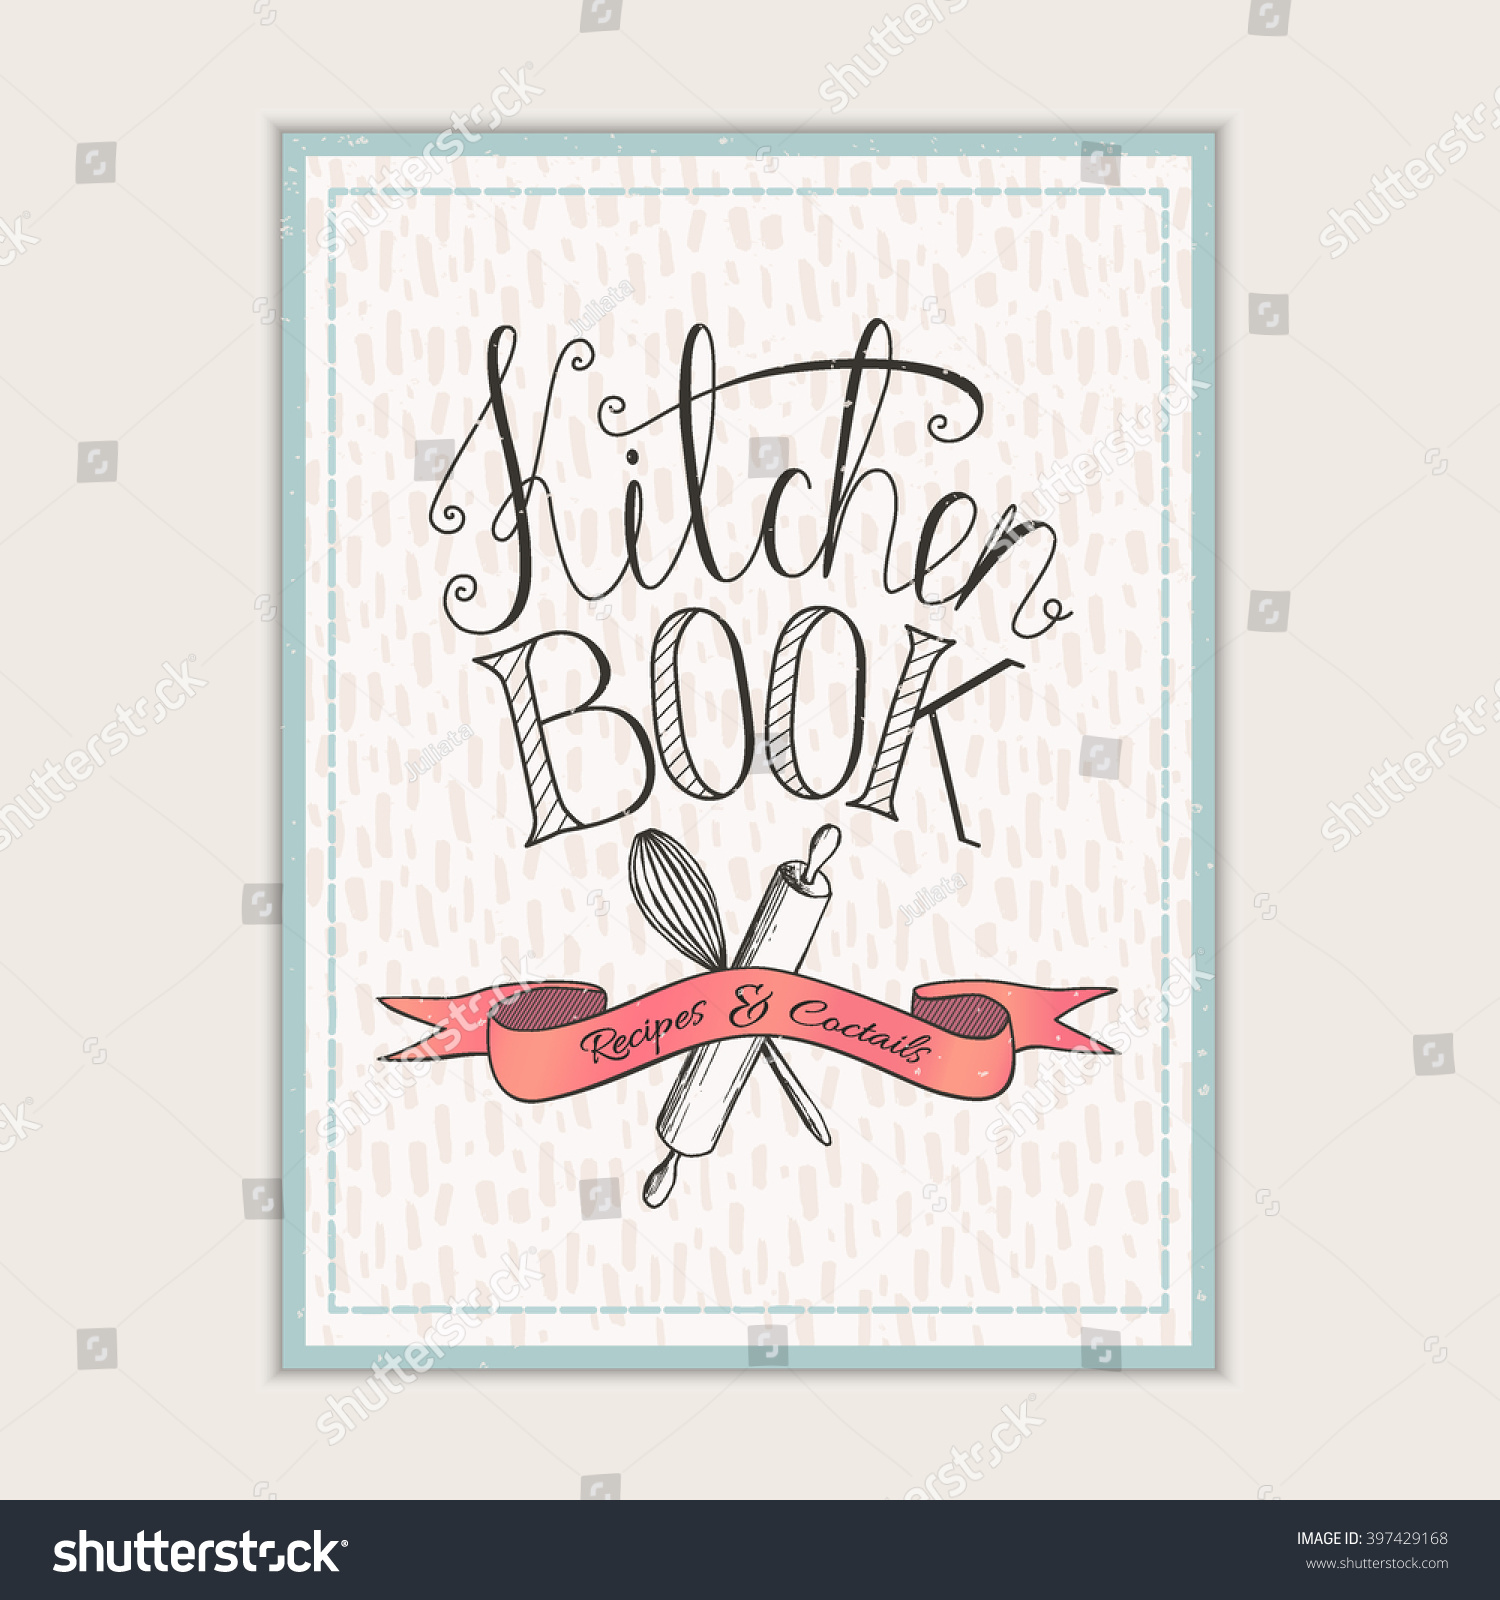 Book Cover Design Elegant : Cover design kitchen book recipes cooking stock vector